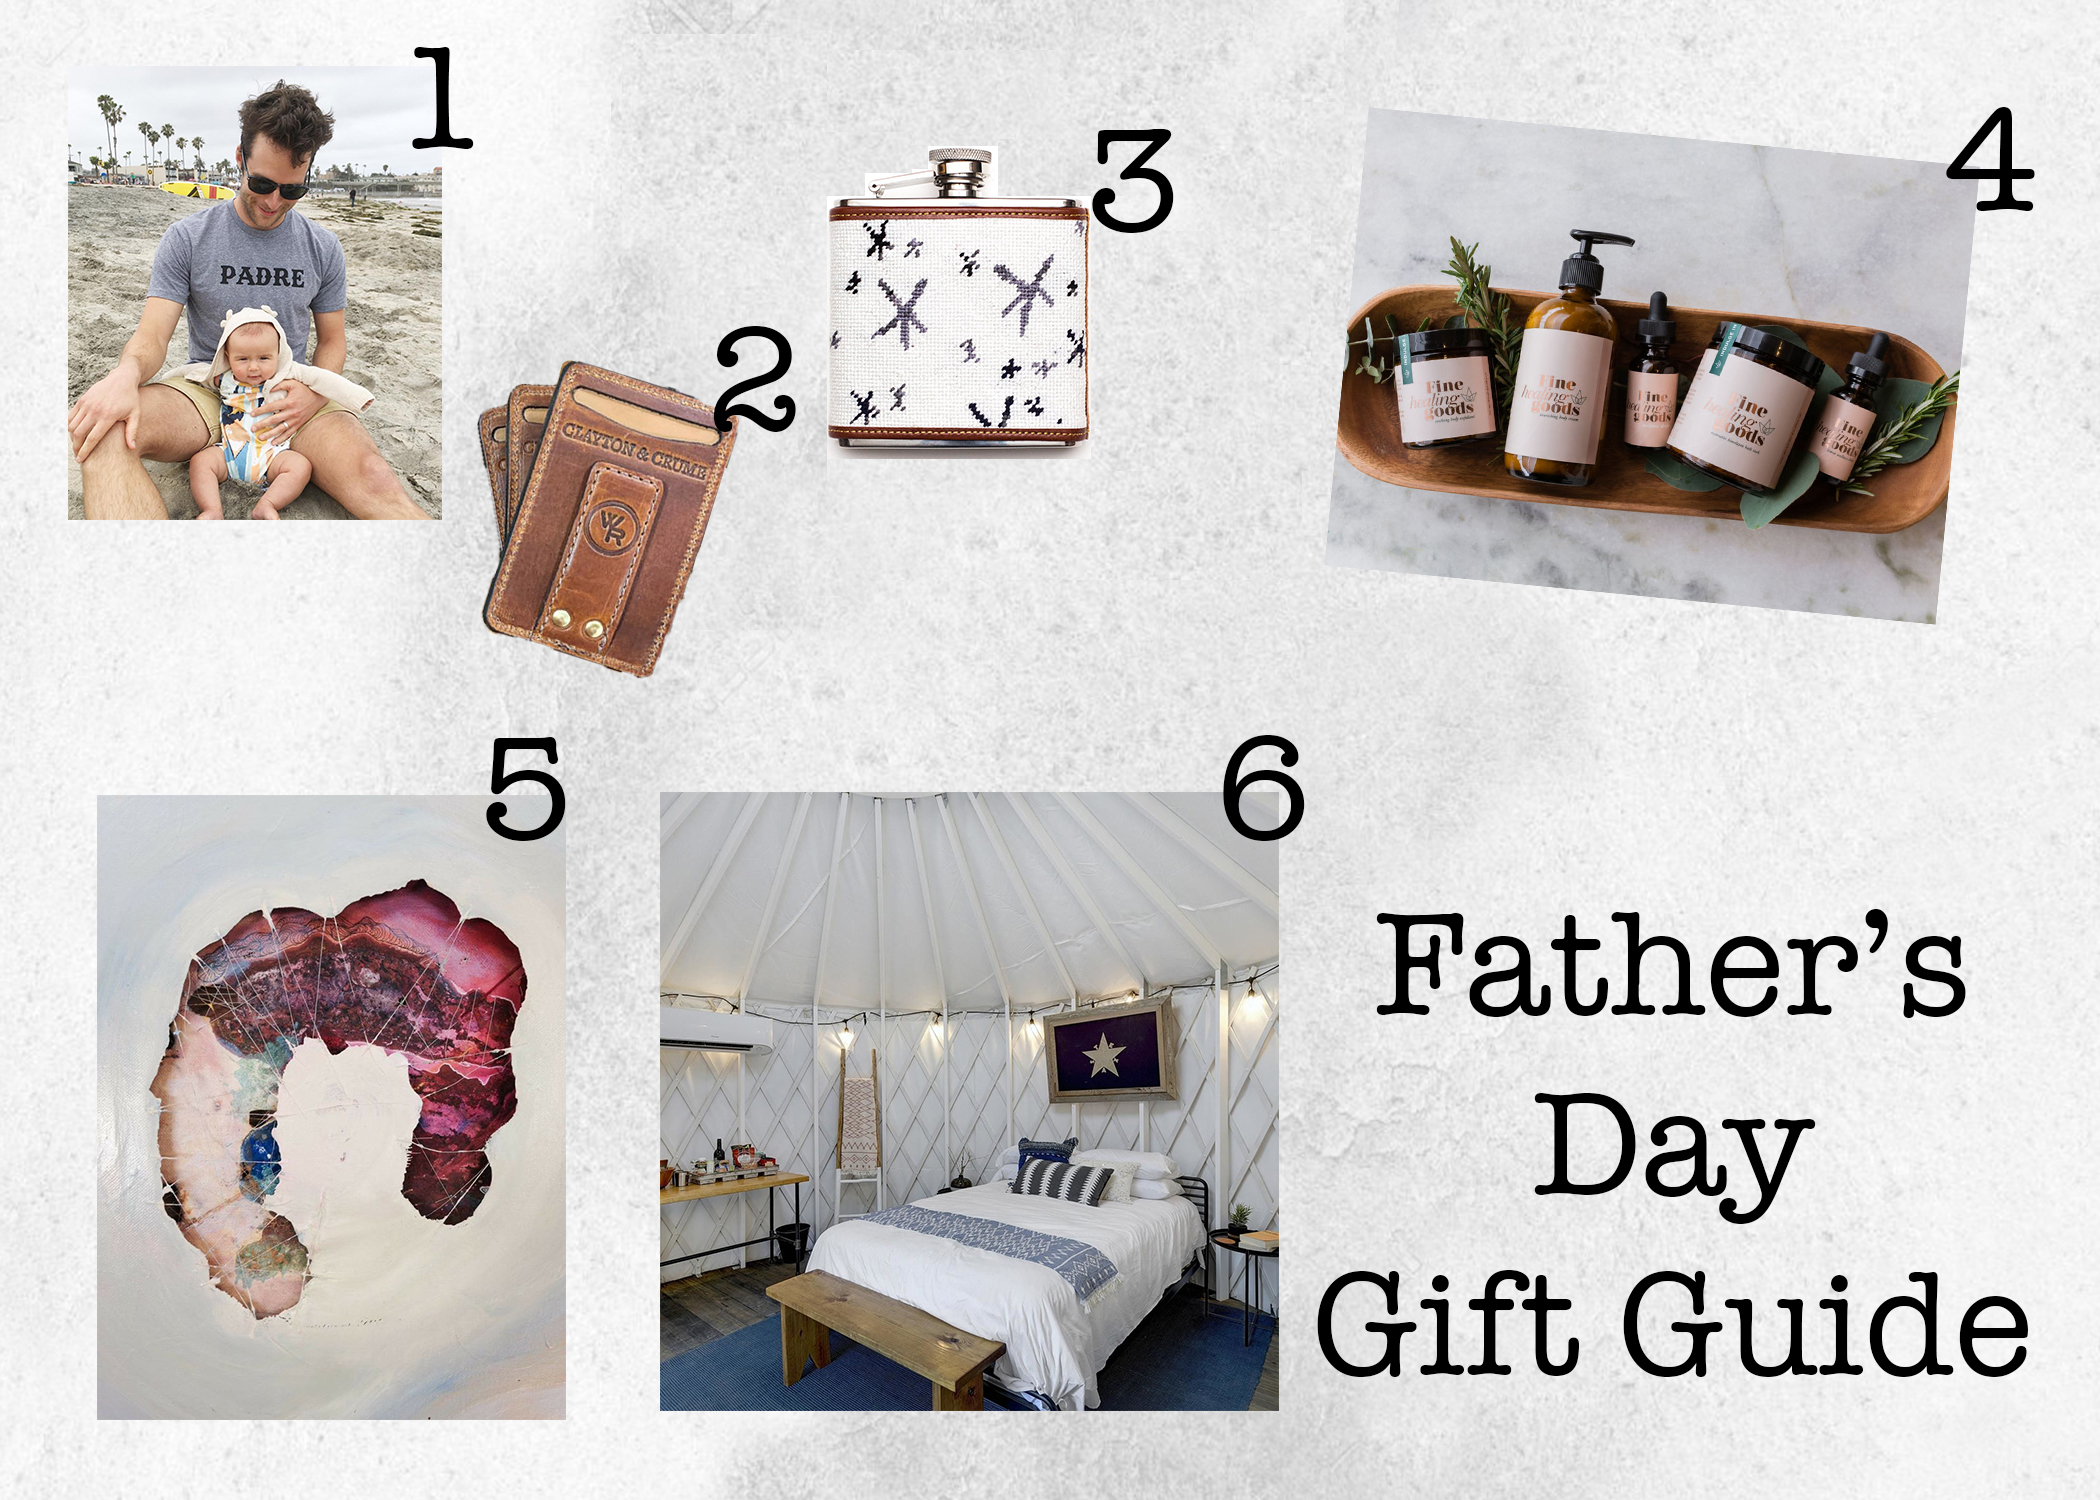 Father's Day Gift Guide - read more...